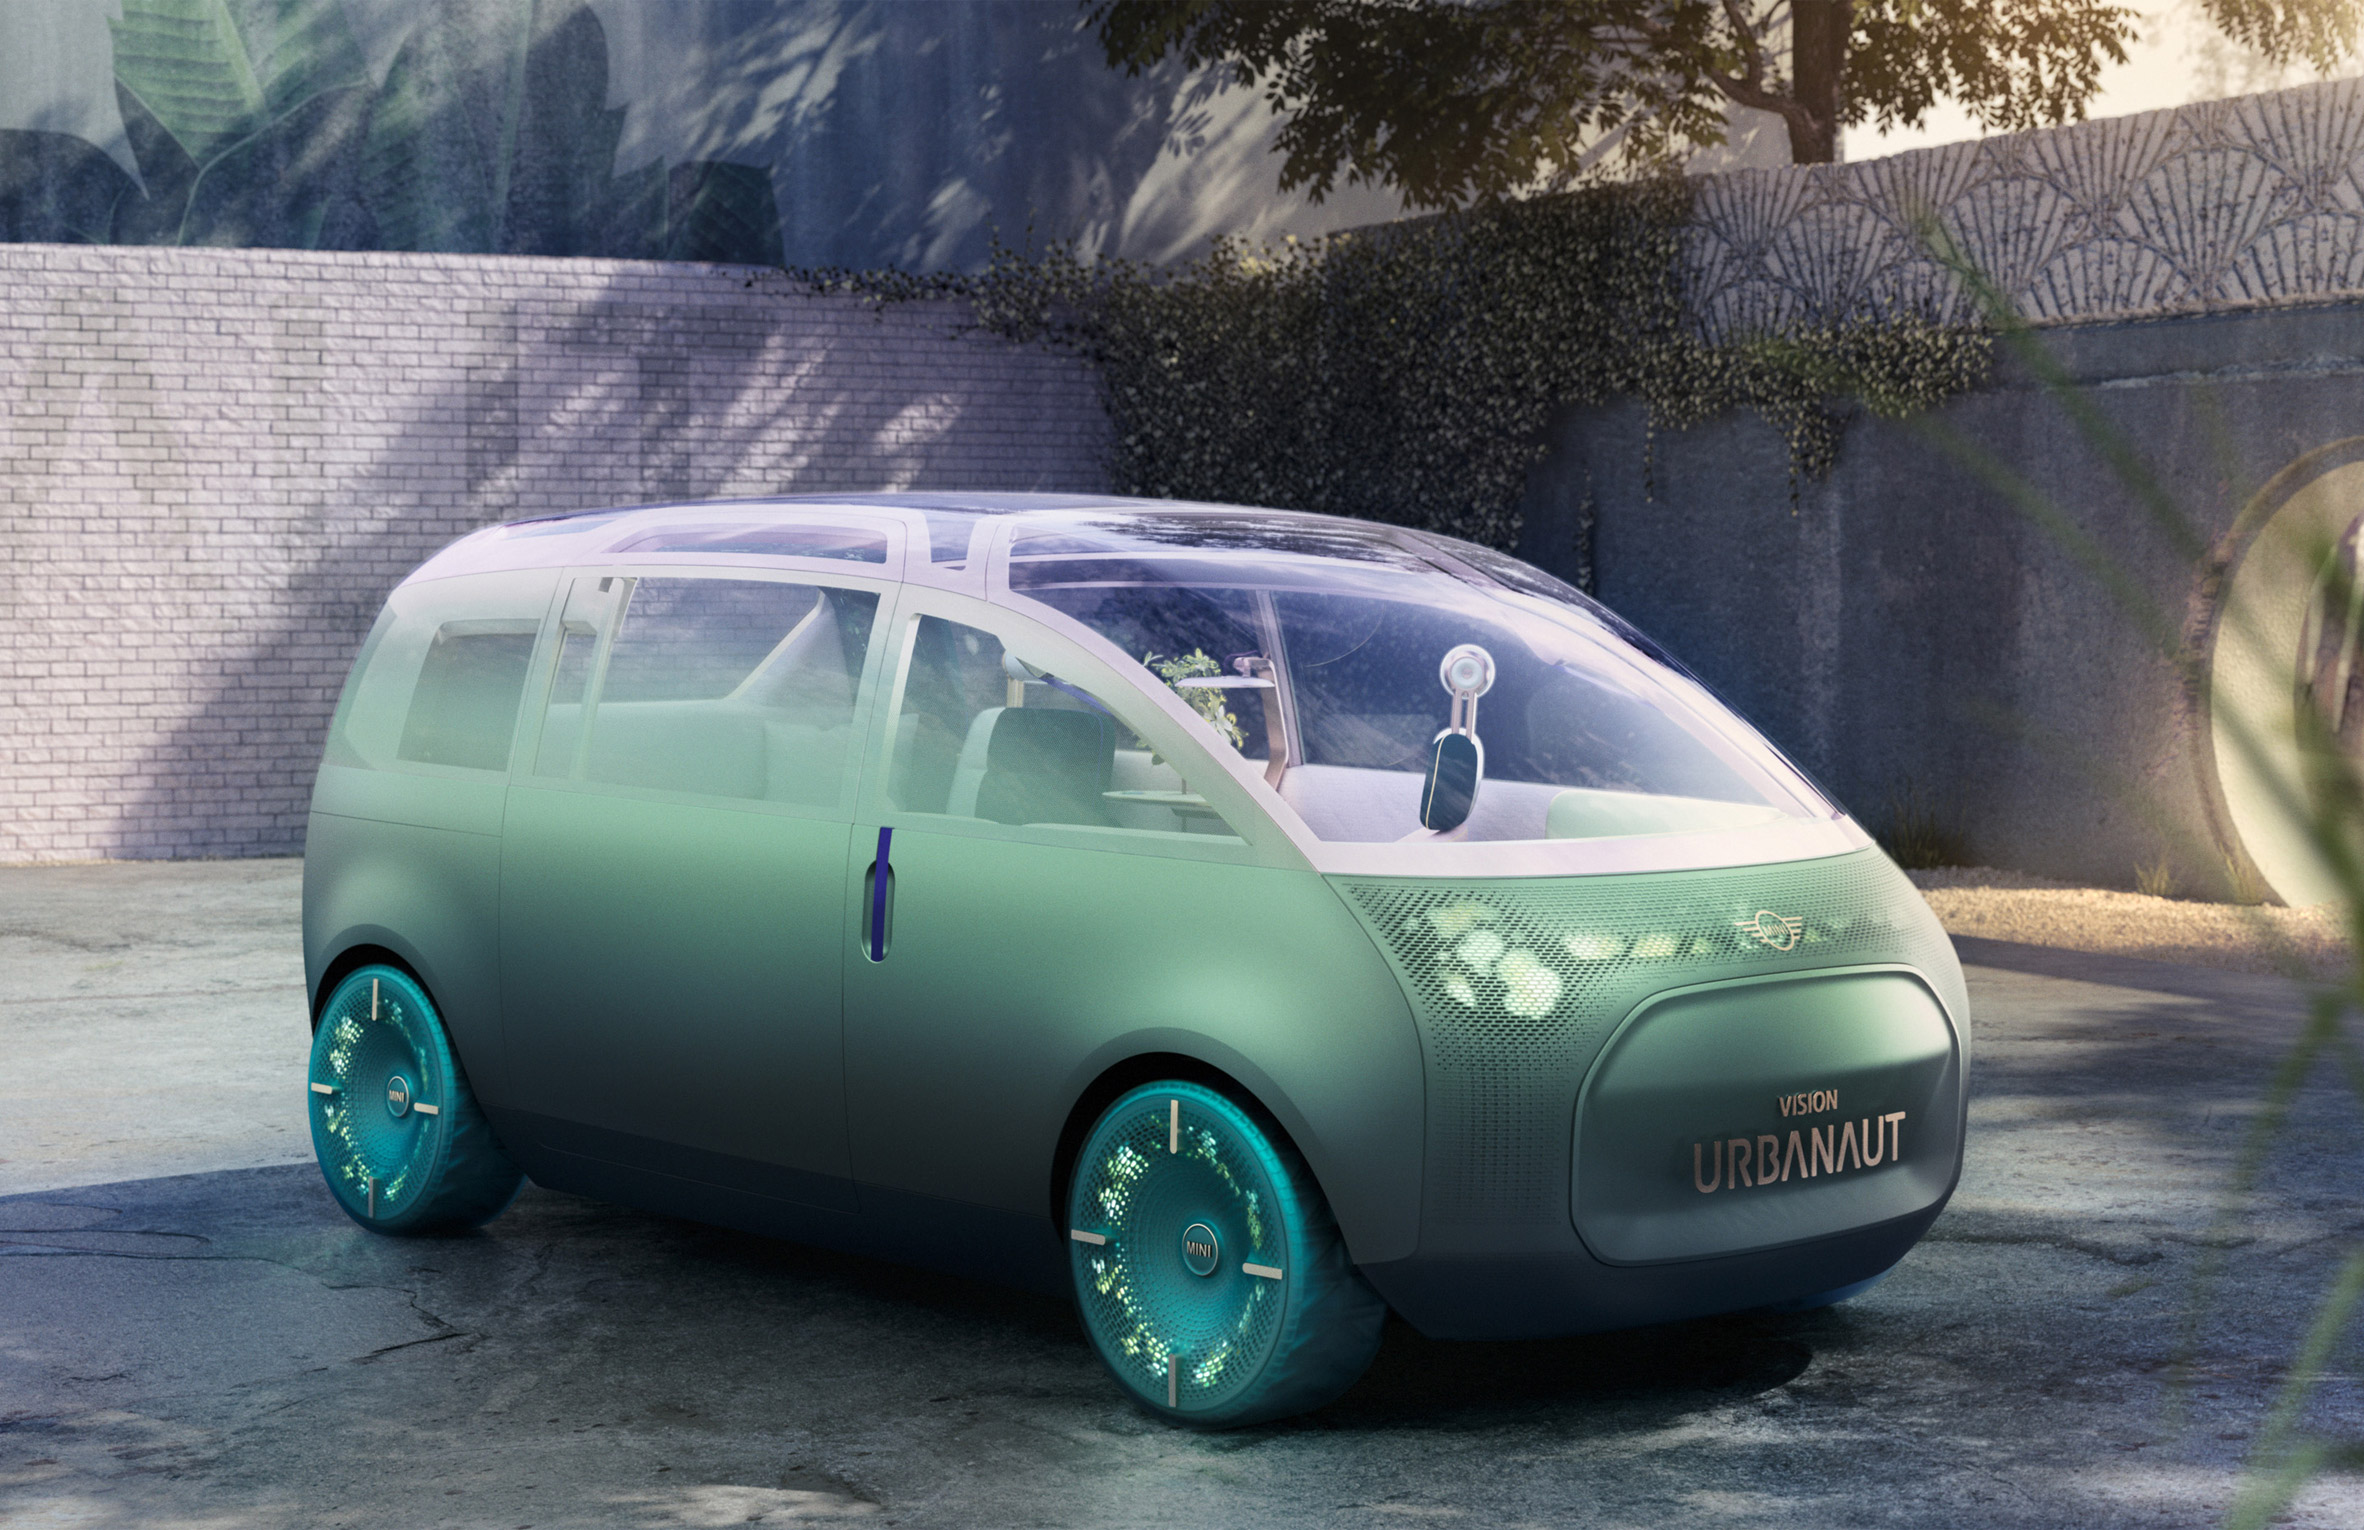 The exterior of the MINI Vision Urbanaut concept vehicle